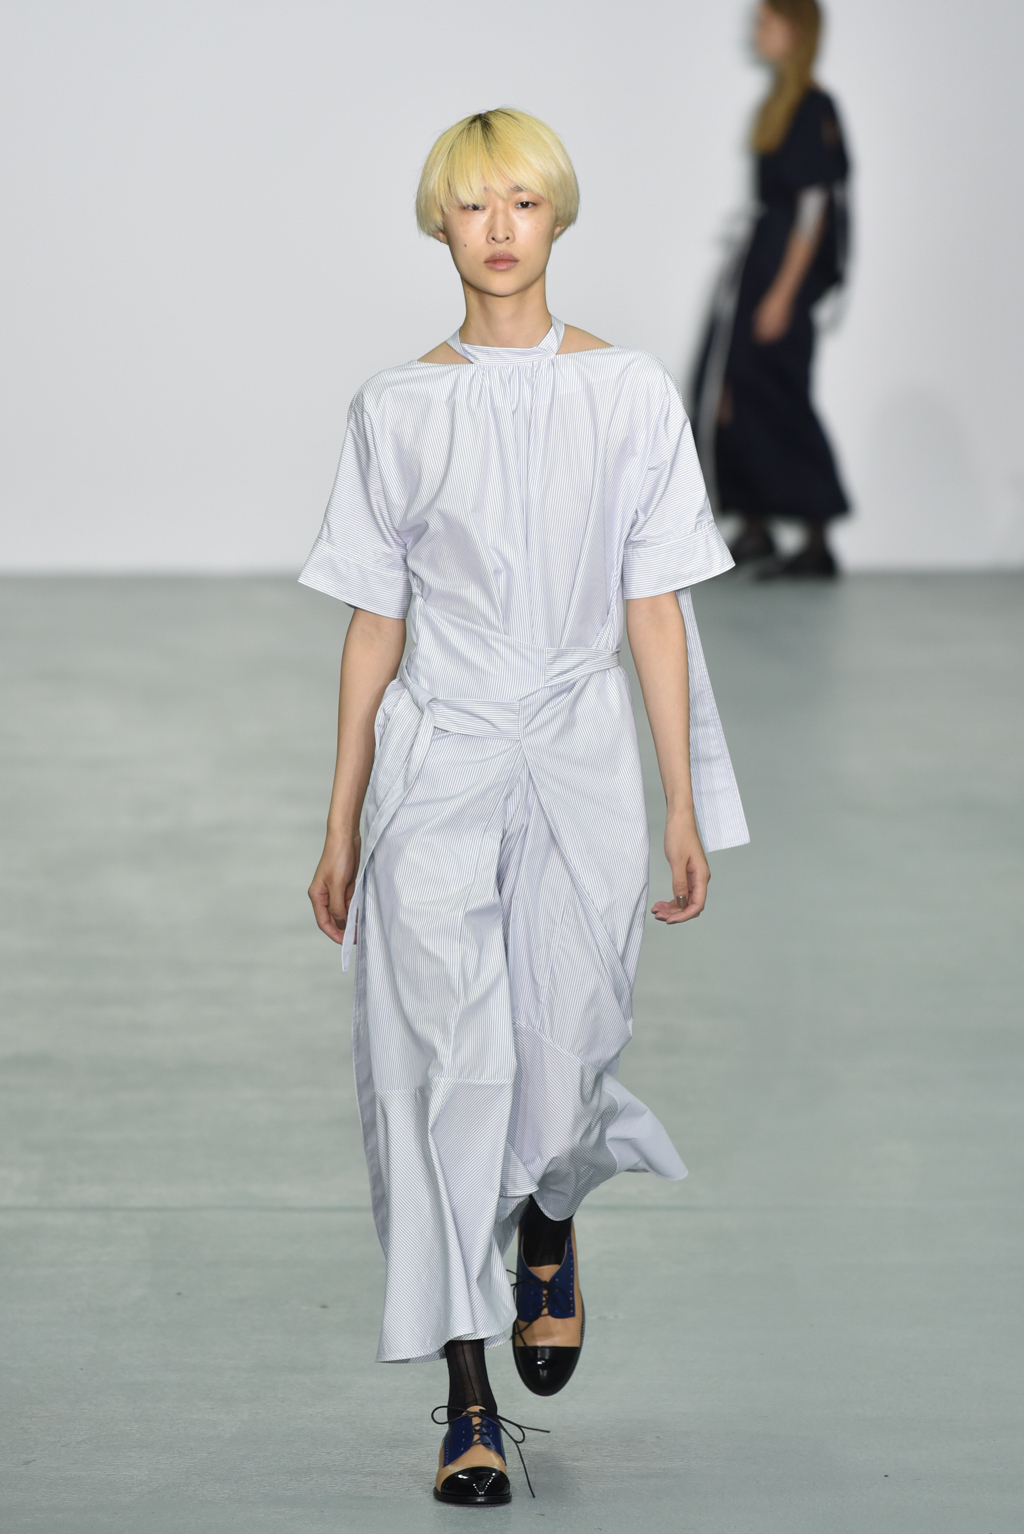 lfw-ss17-eudon-choi-krisztian-pinter-the-upcoming-20